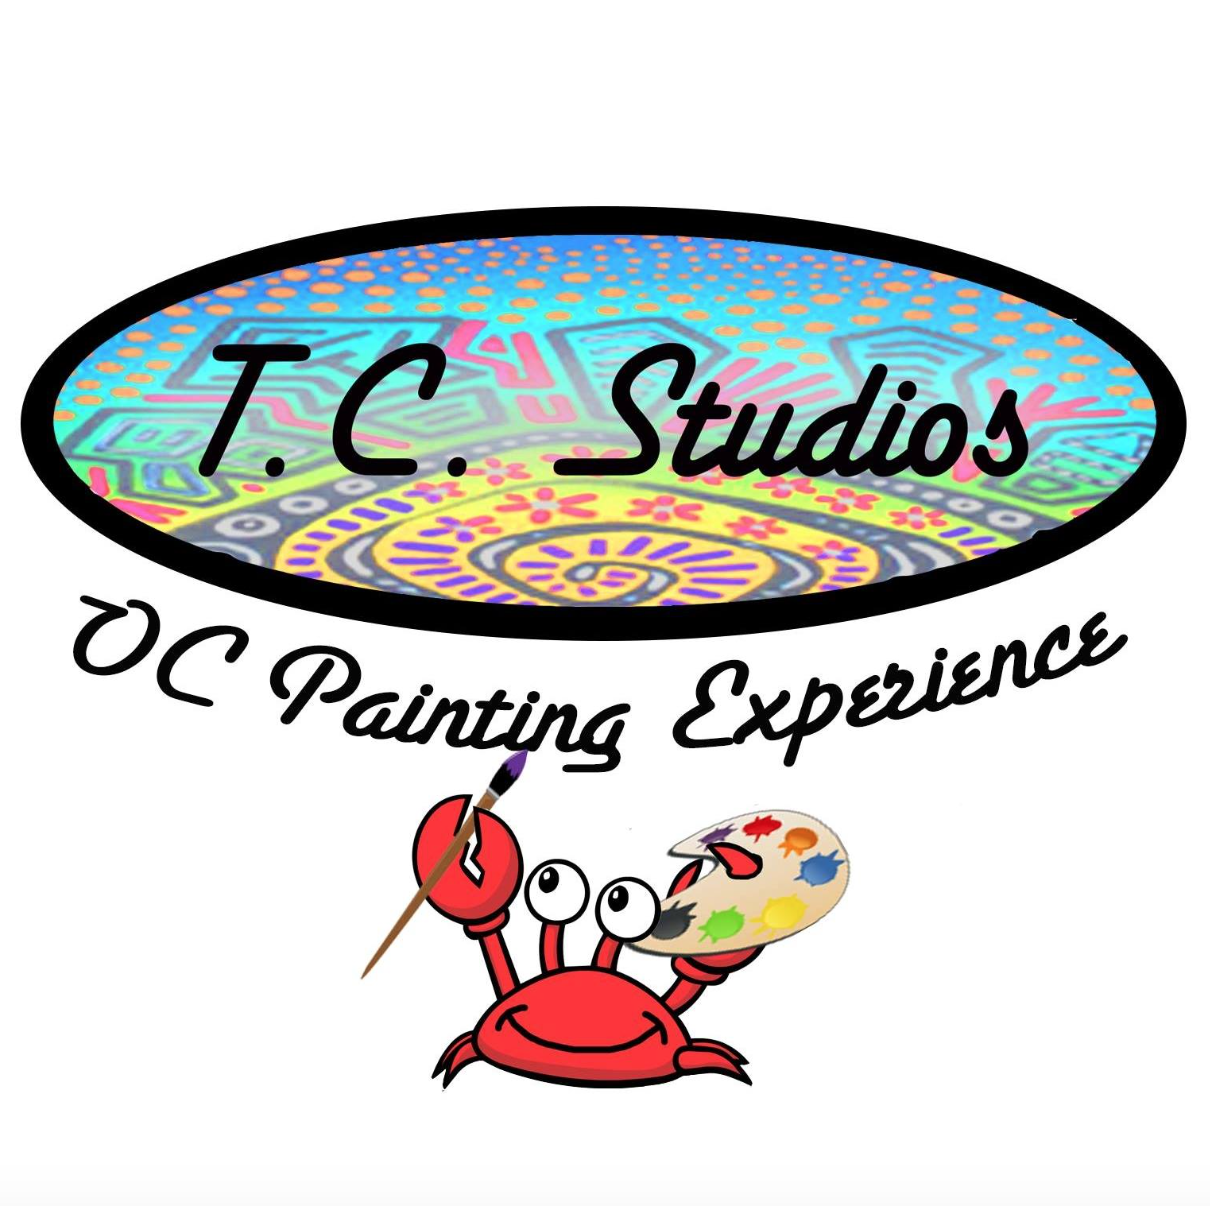 Ocean City Painting Experience by T.C. Studios